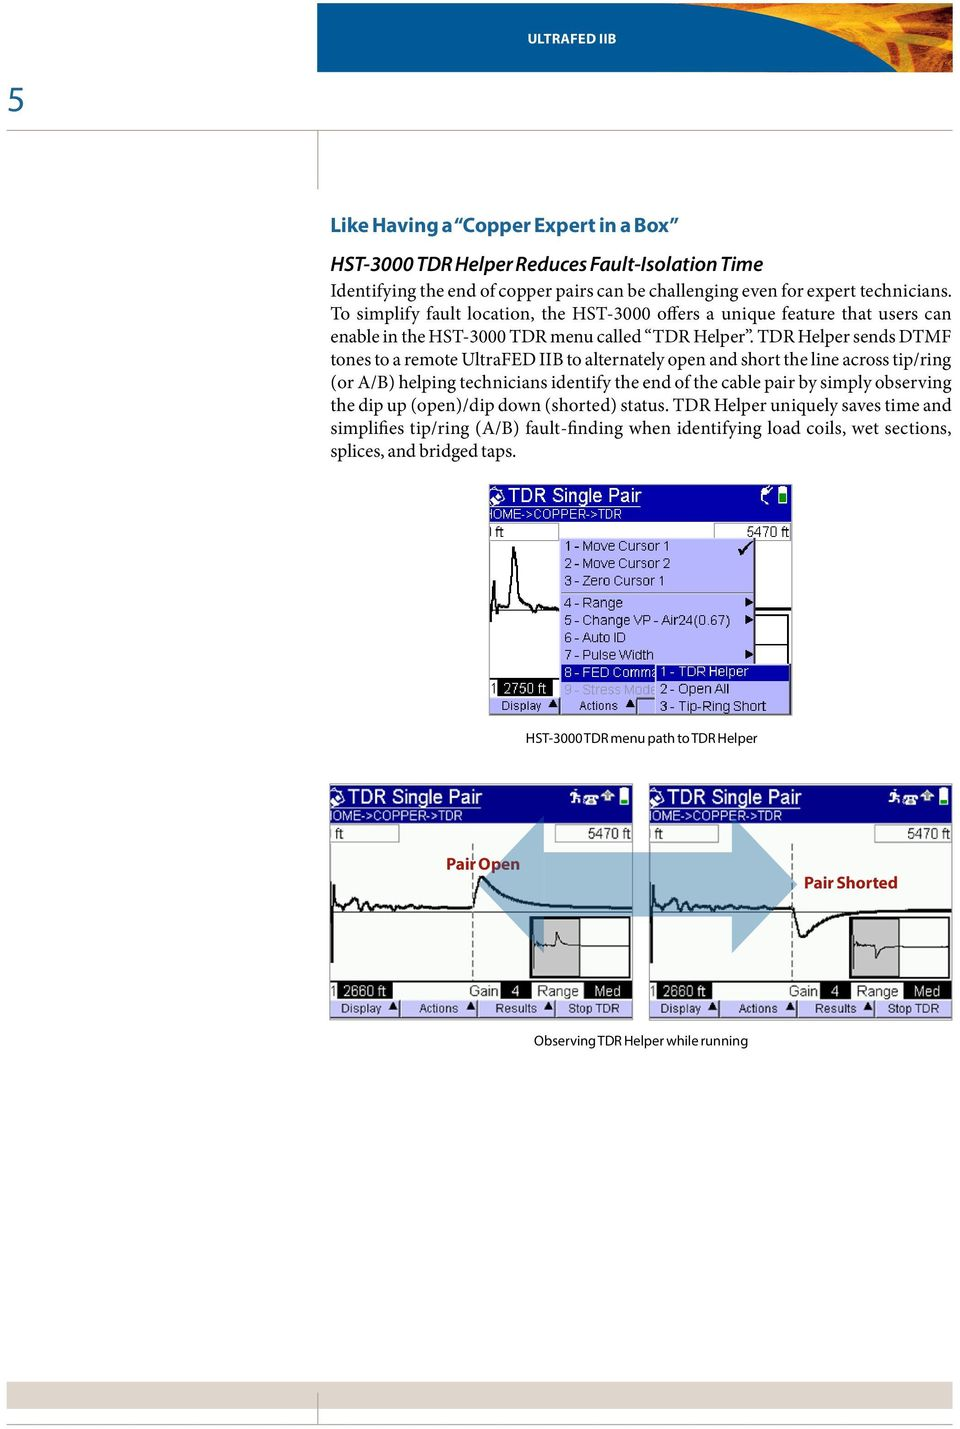 TDR Helper sends DTMF tones to a remote UltraFED IIB to alternately open and short the line across tip/ring (or A/B) helping technicians identify the end of the cable pair by simply observing